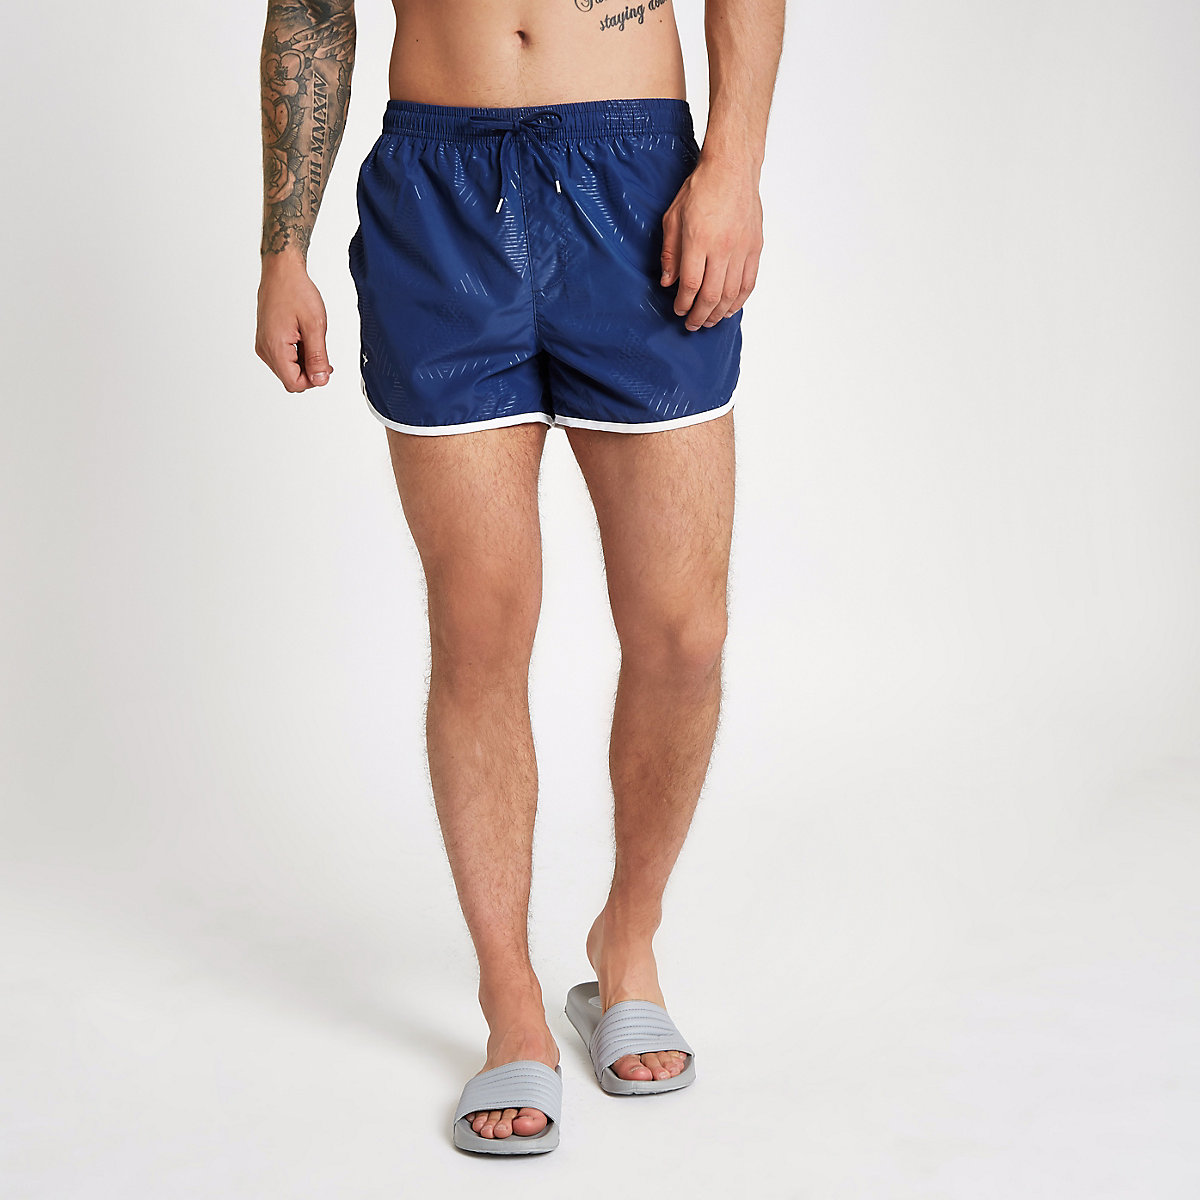 Football Bolt navy runner swim trunks